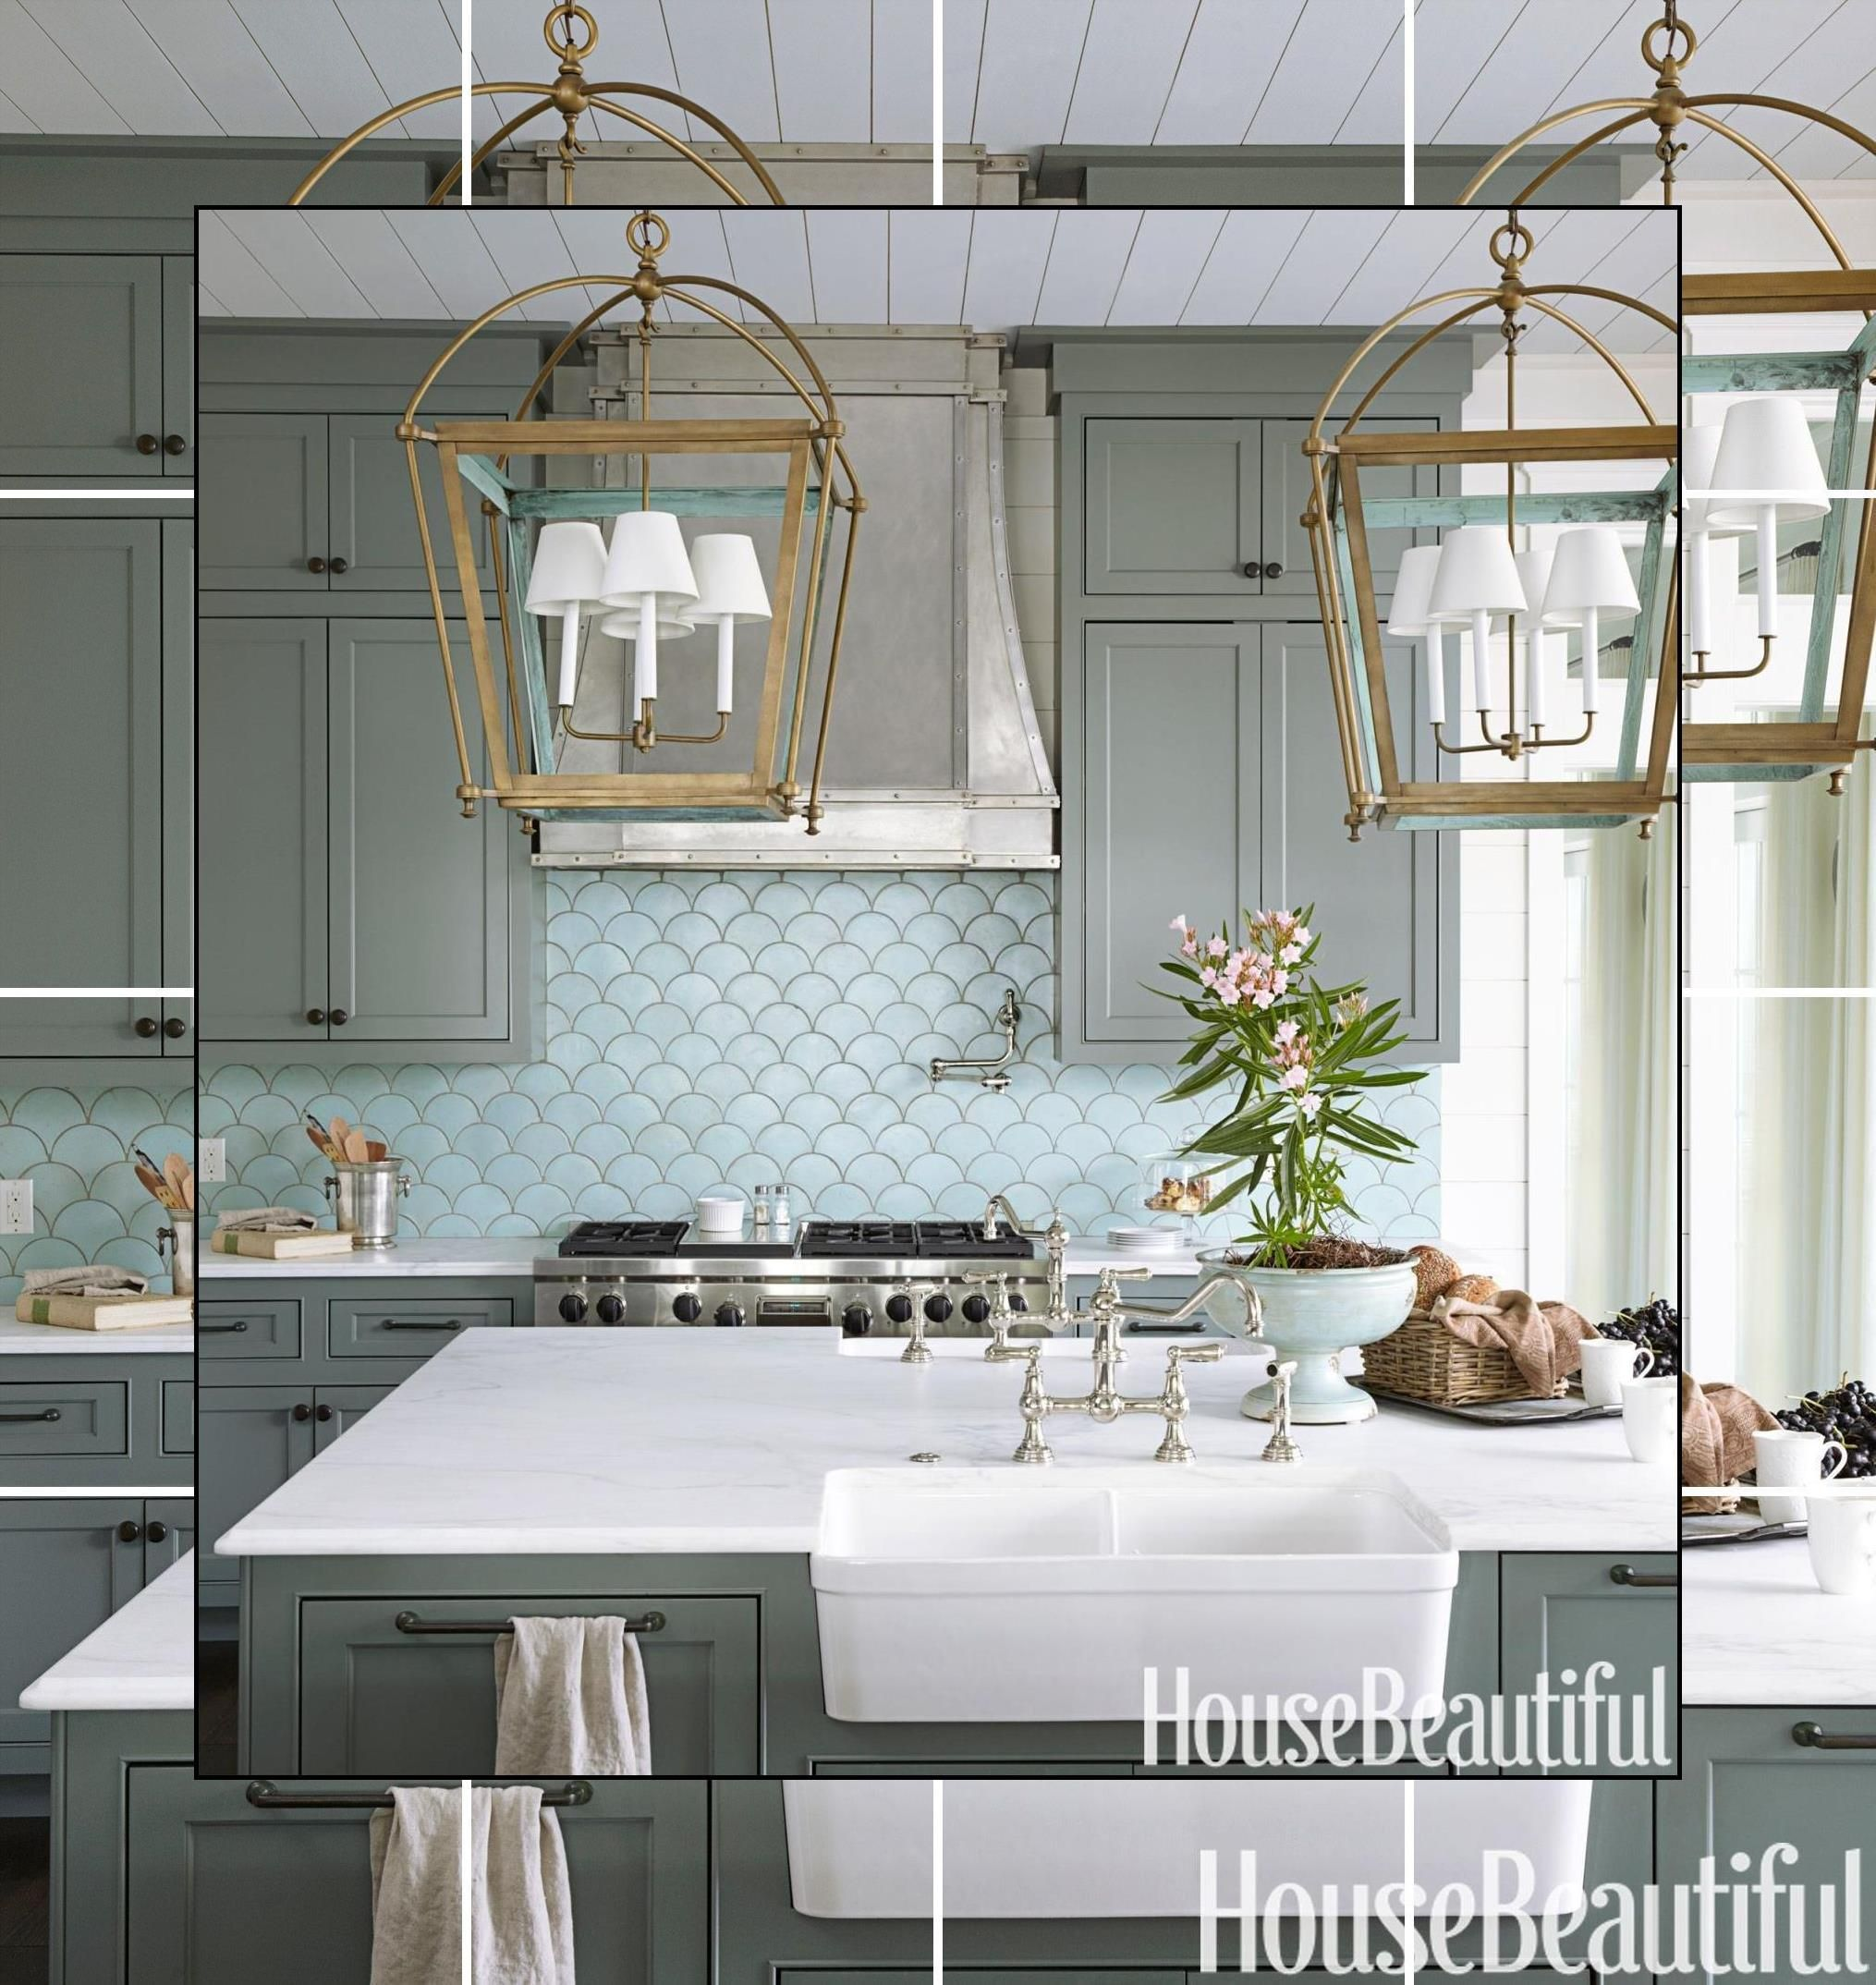 Maher Kitchen Cabinets: Decorative Wall Decor